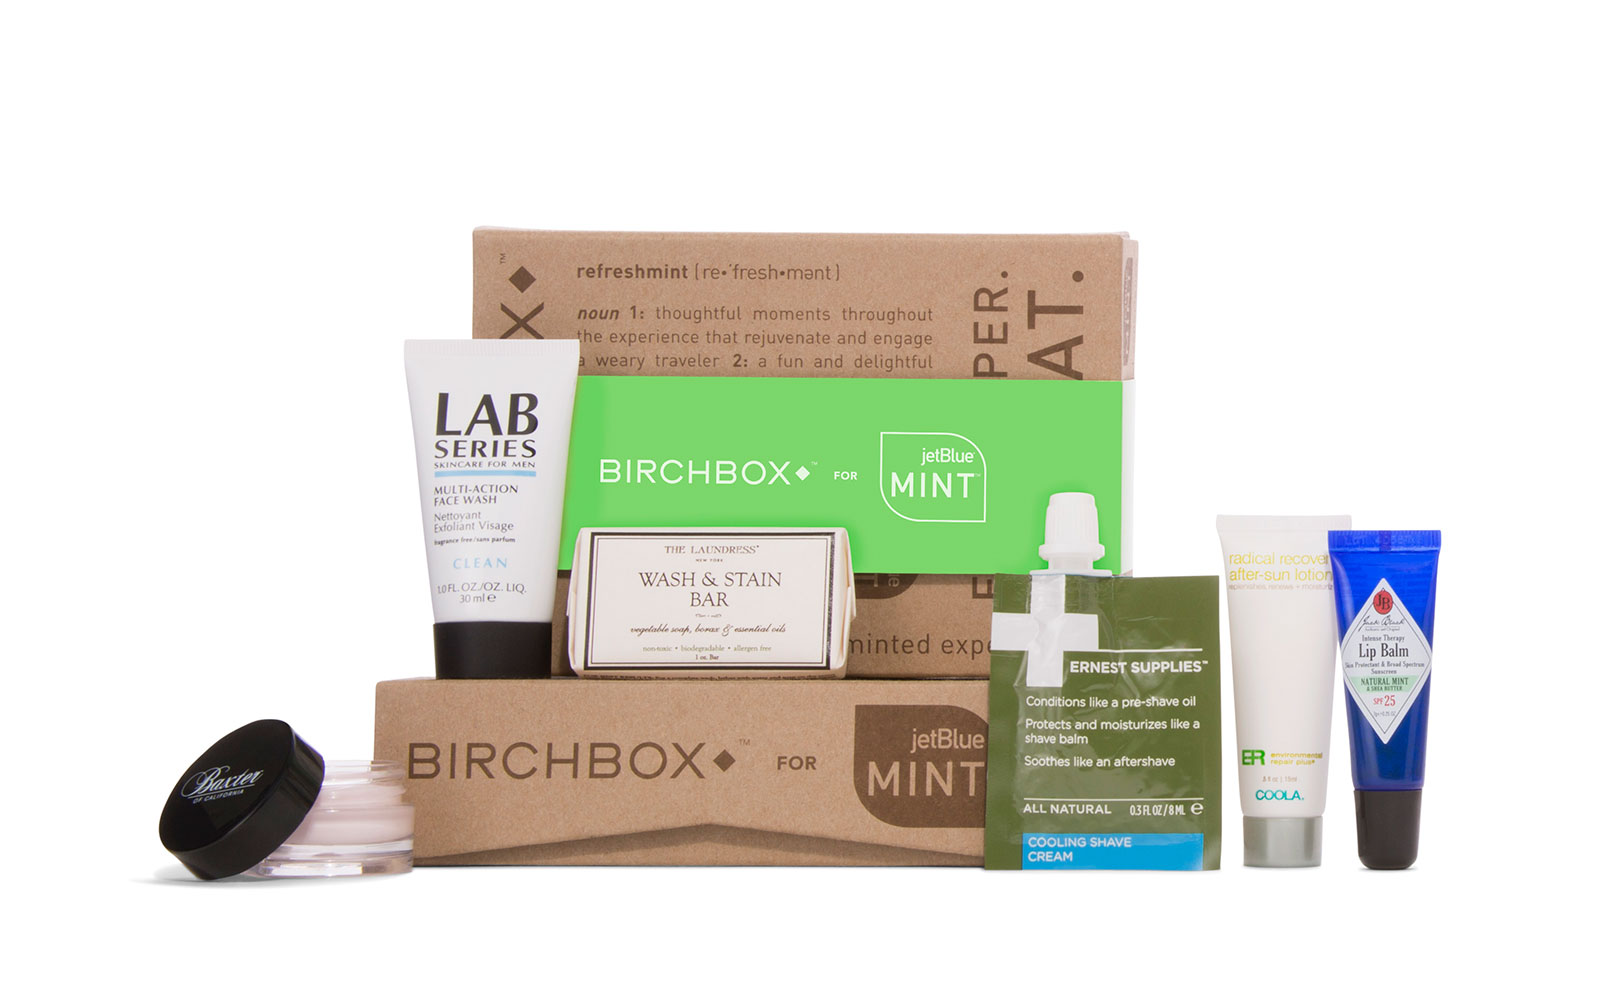 Coolest Airline Amenity Kits: JetBlue - Birchbox for Mint Experience